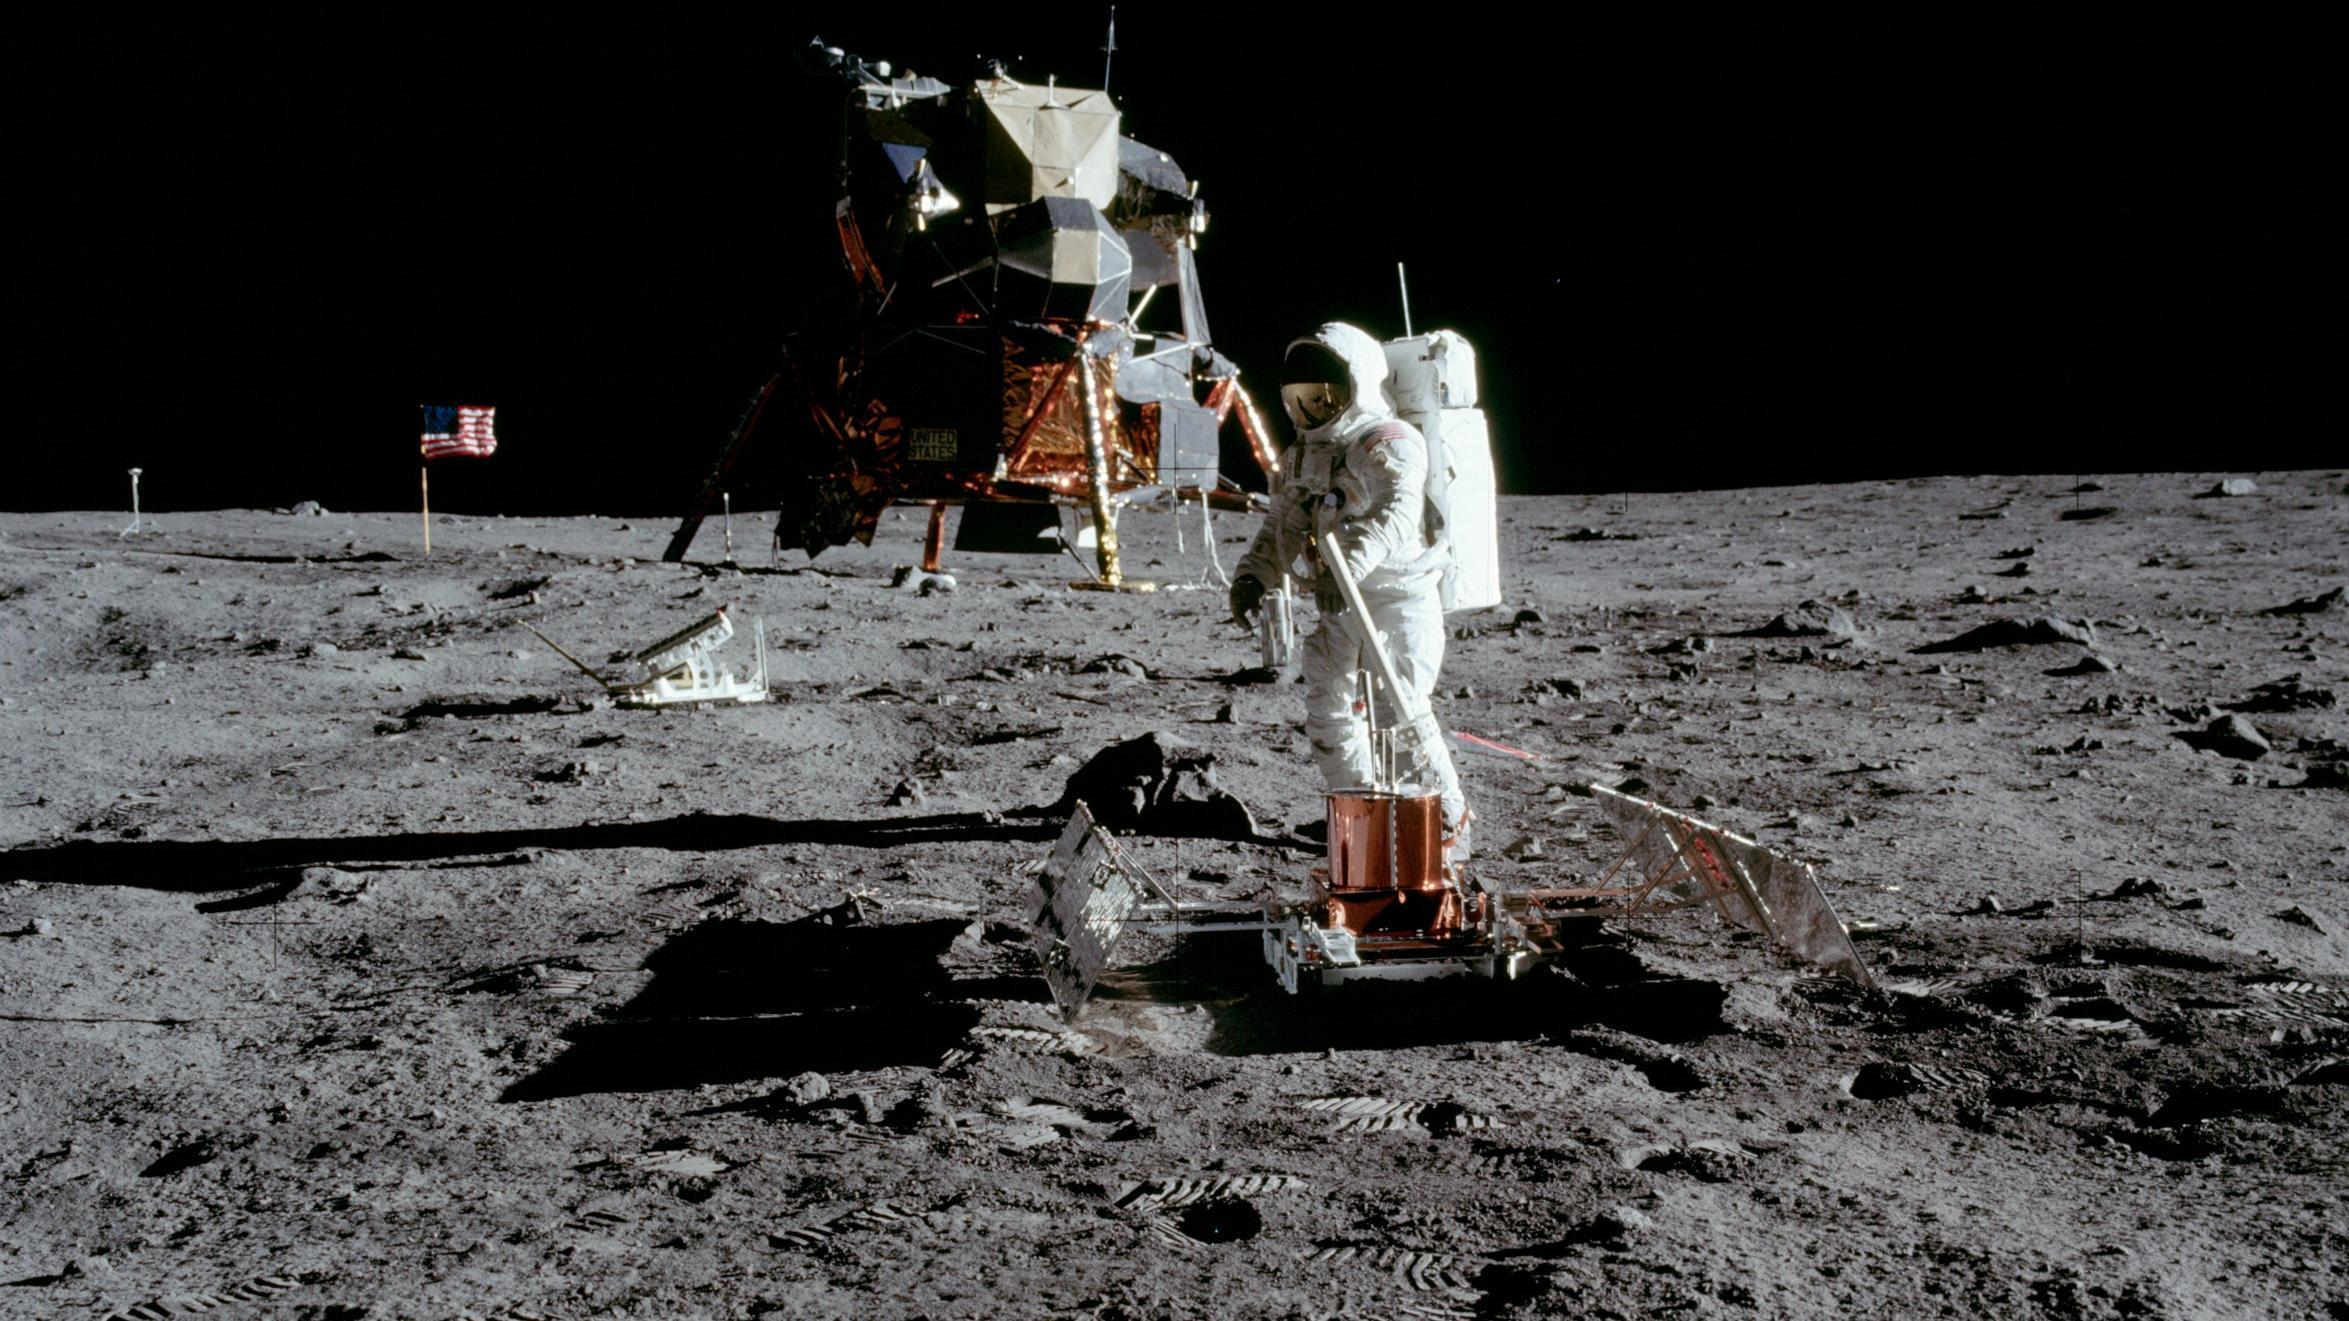 apollo missions wallpaper - photo #29